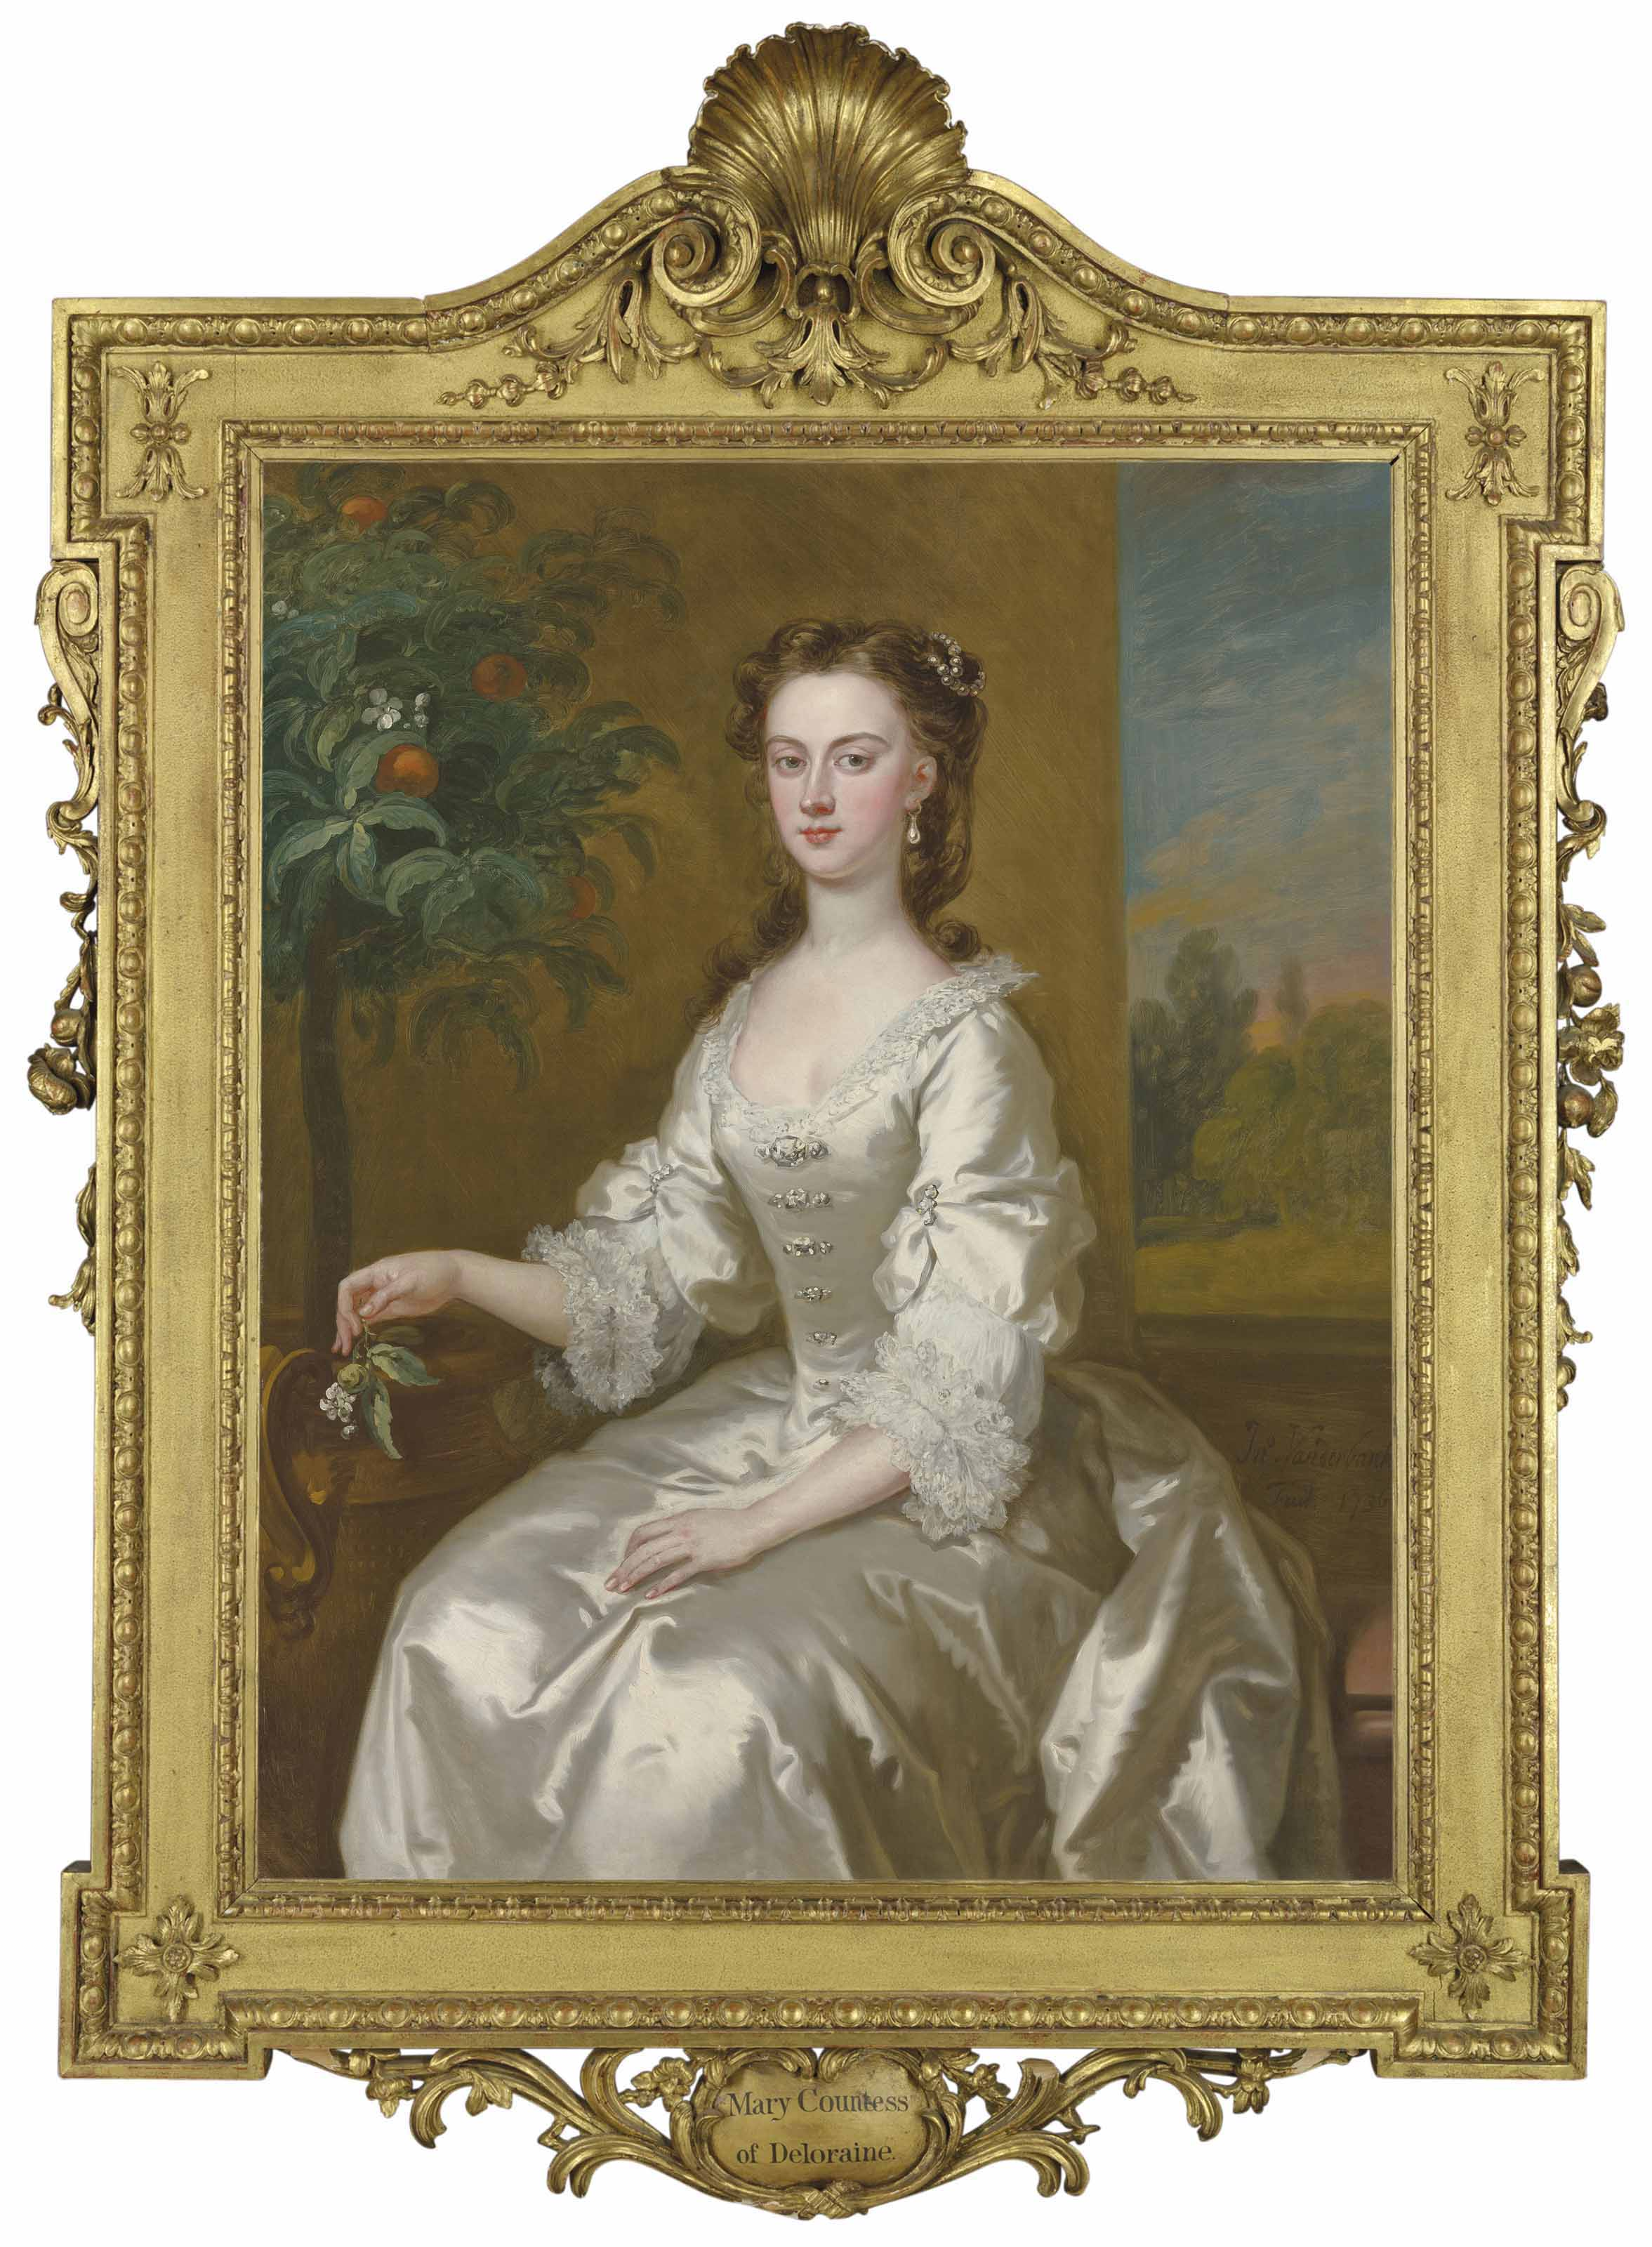 Mary, Countess of Delorain (1705-1737), three-quarter length, in a white dress by an orange tree, a landscape beyond